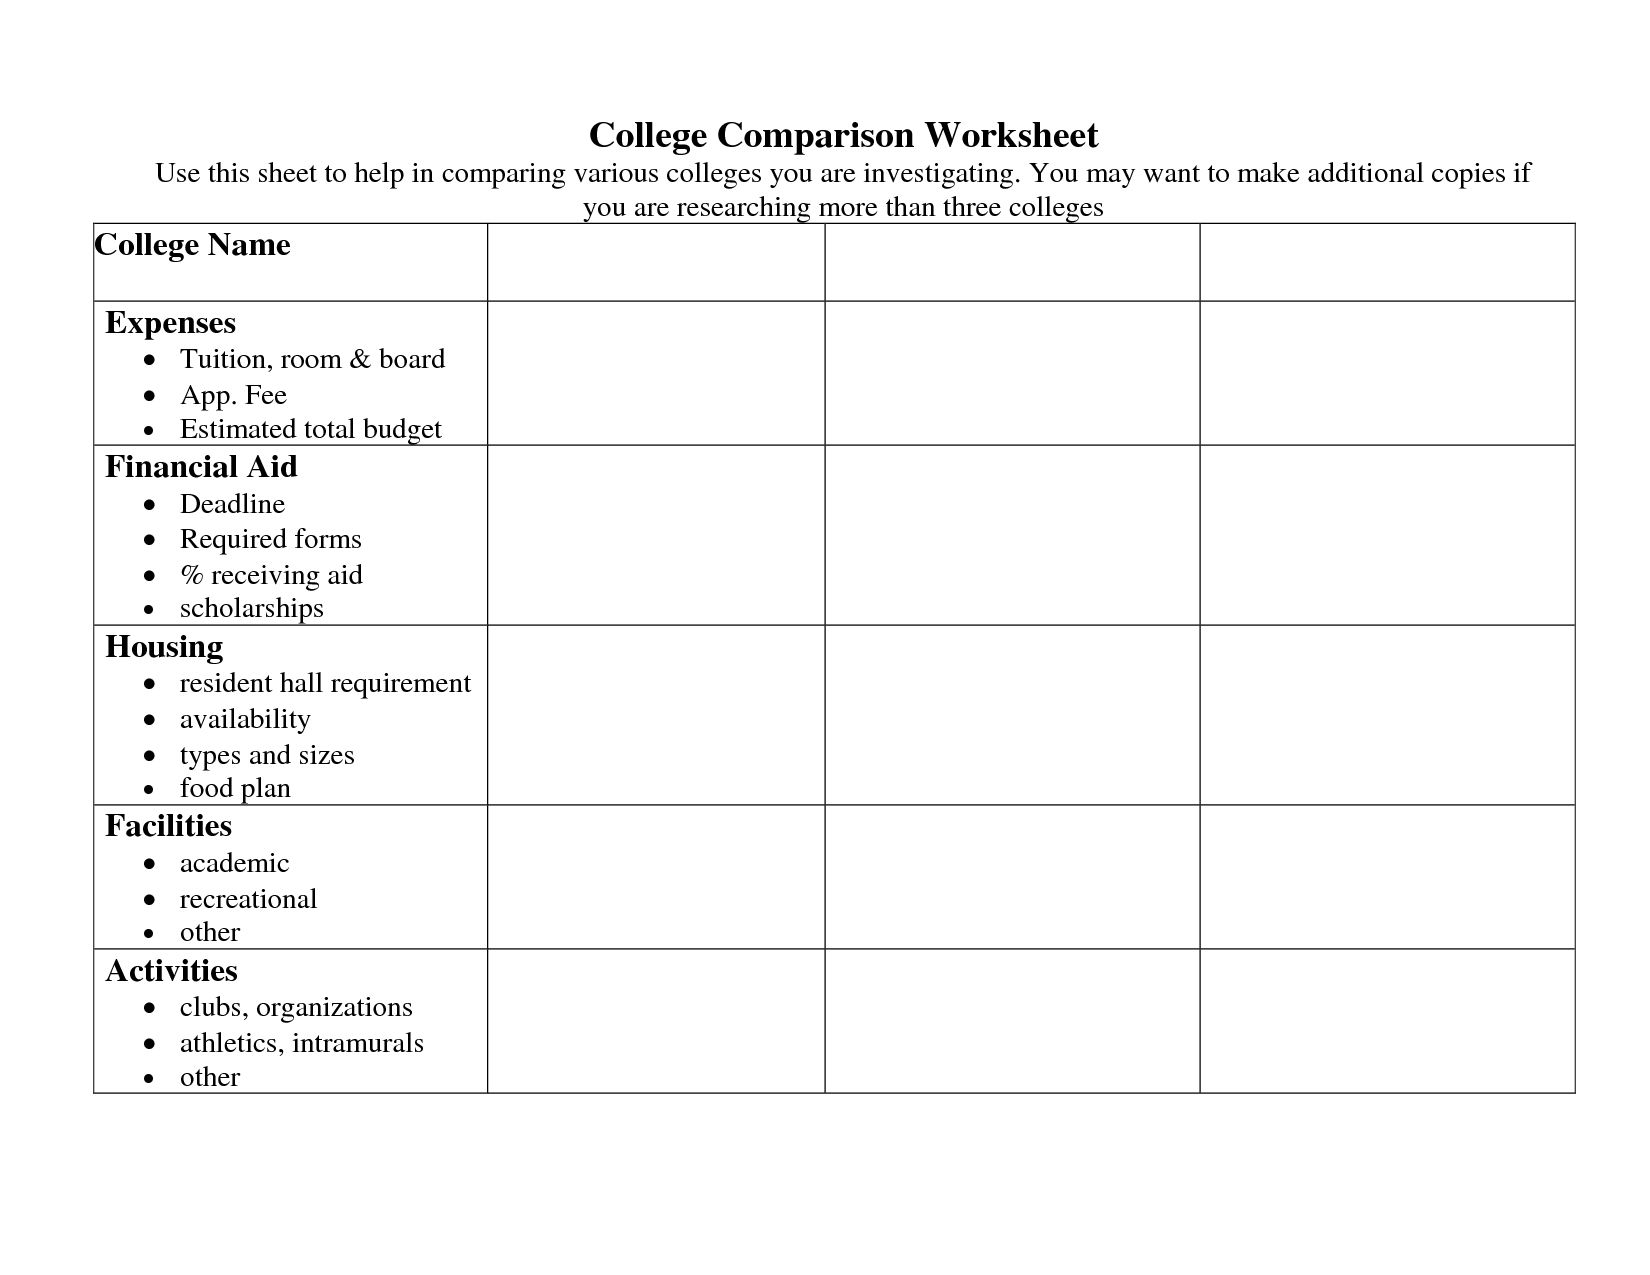 College Comparison Excel Spreadsheet In 2020 College Application Checklist College Application School Lesson Plans